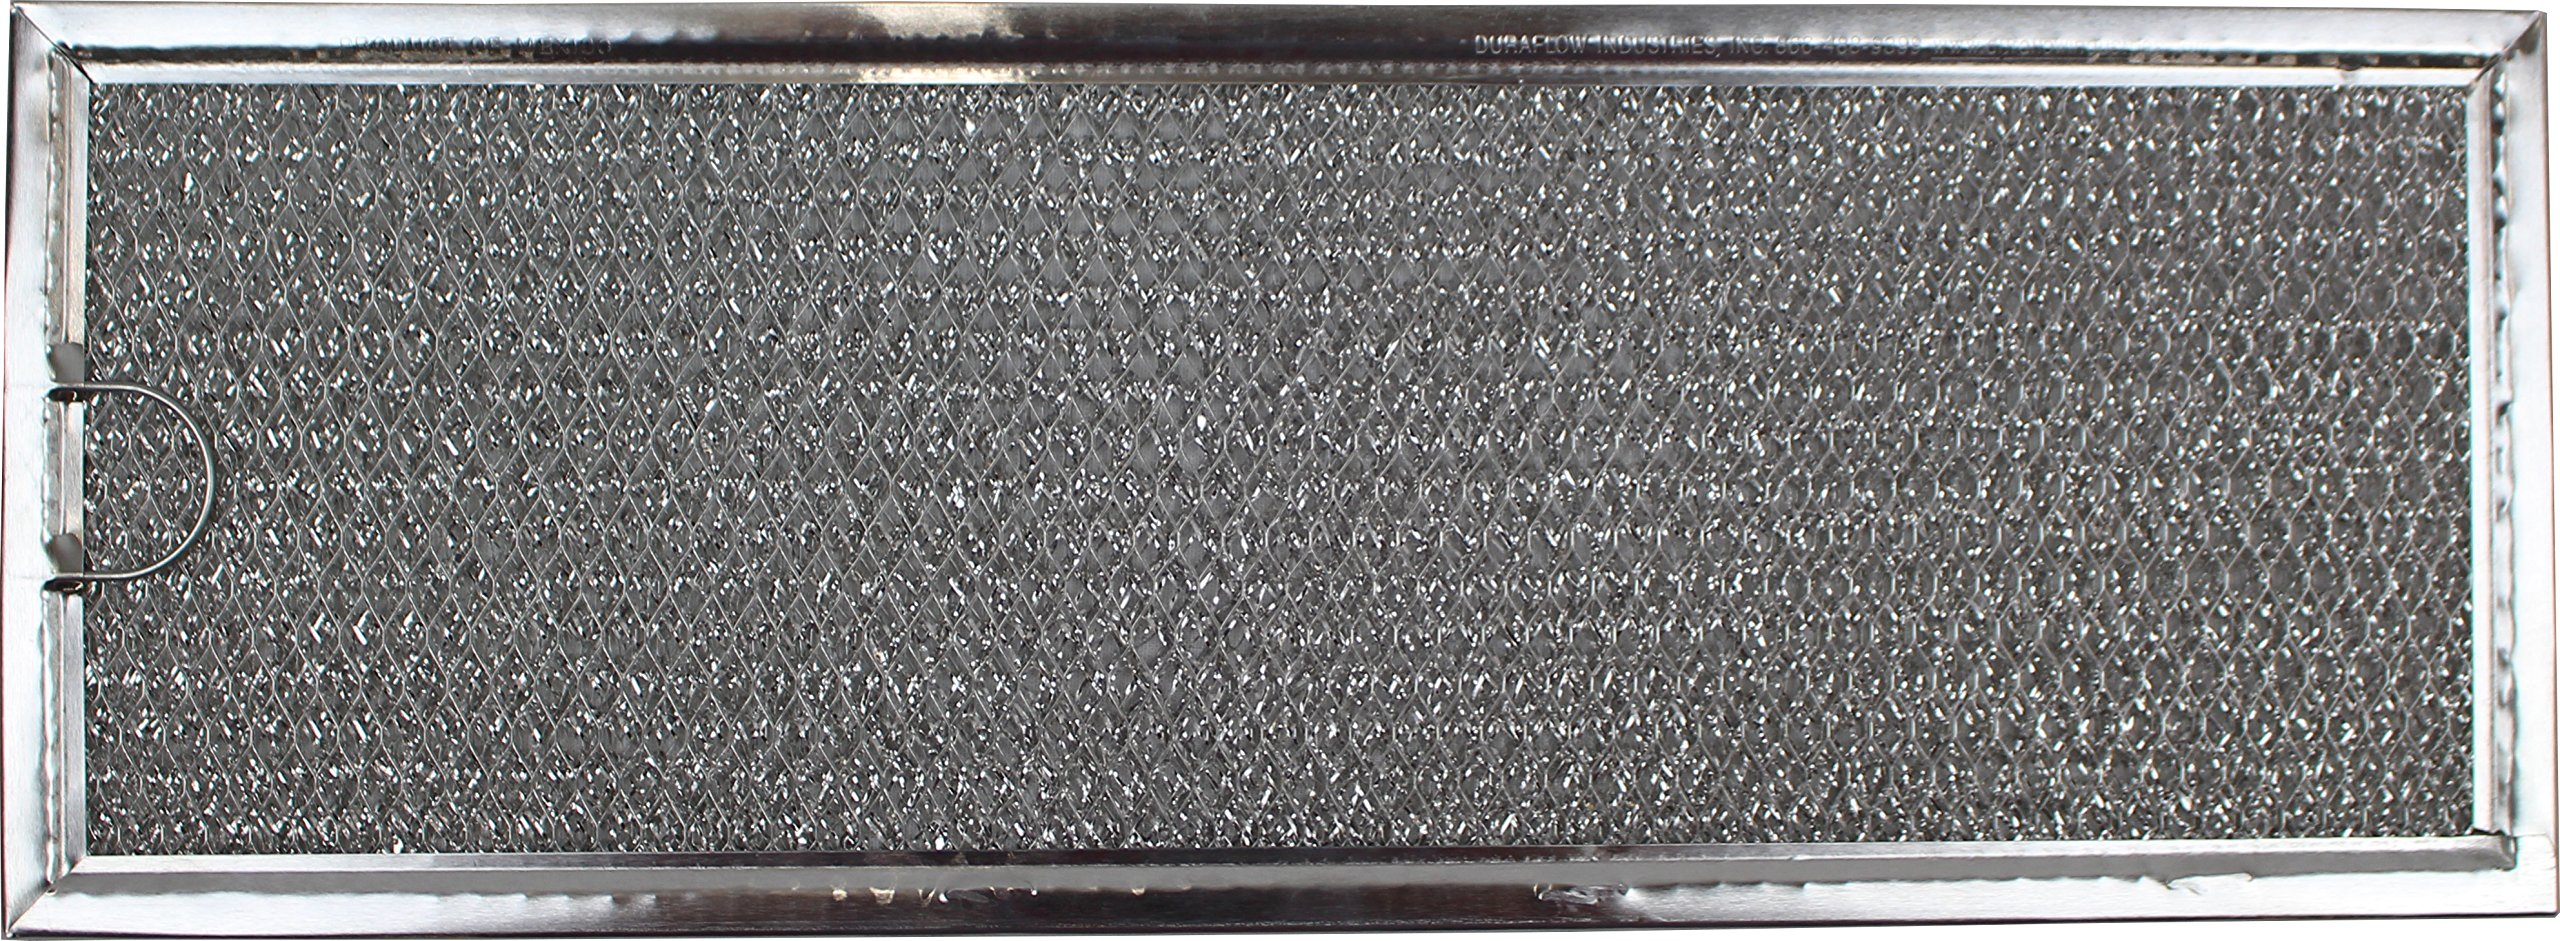 Replacement Filter Compatible with GE WB02X10288 WB2X1582   4 3/4 x 13 x 3/32